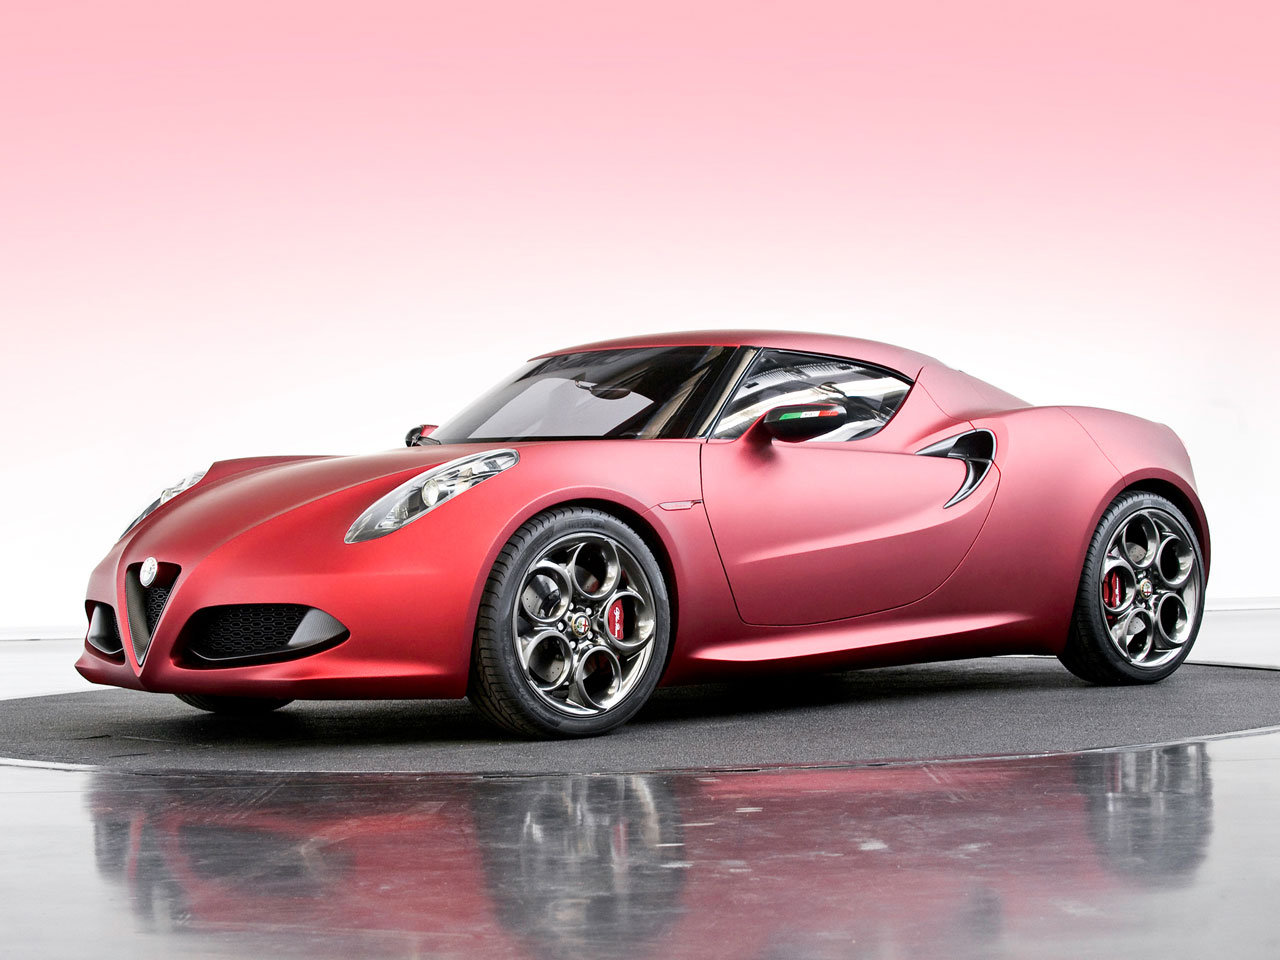 2018 Alfa Romeo 4C Concept photo - 5